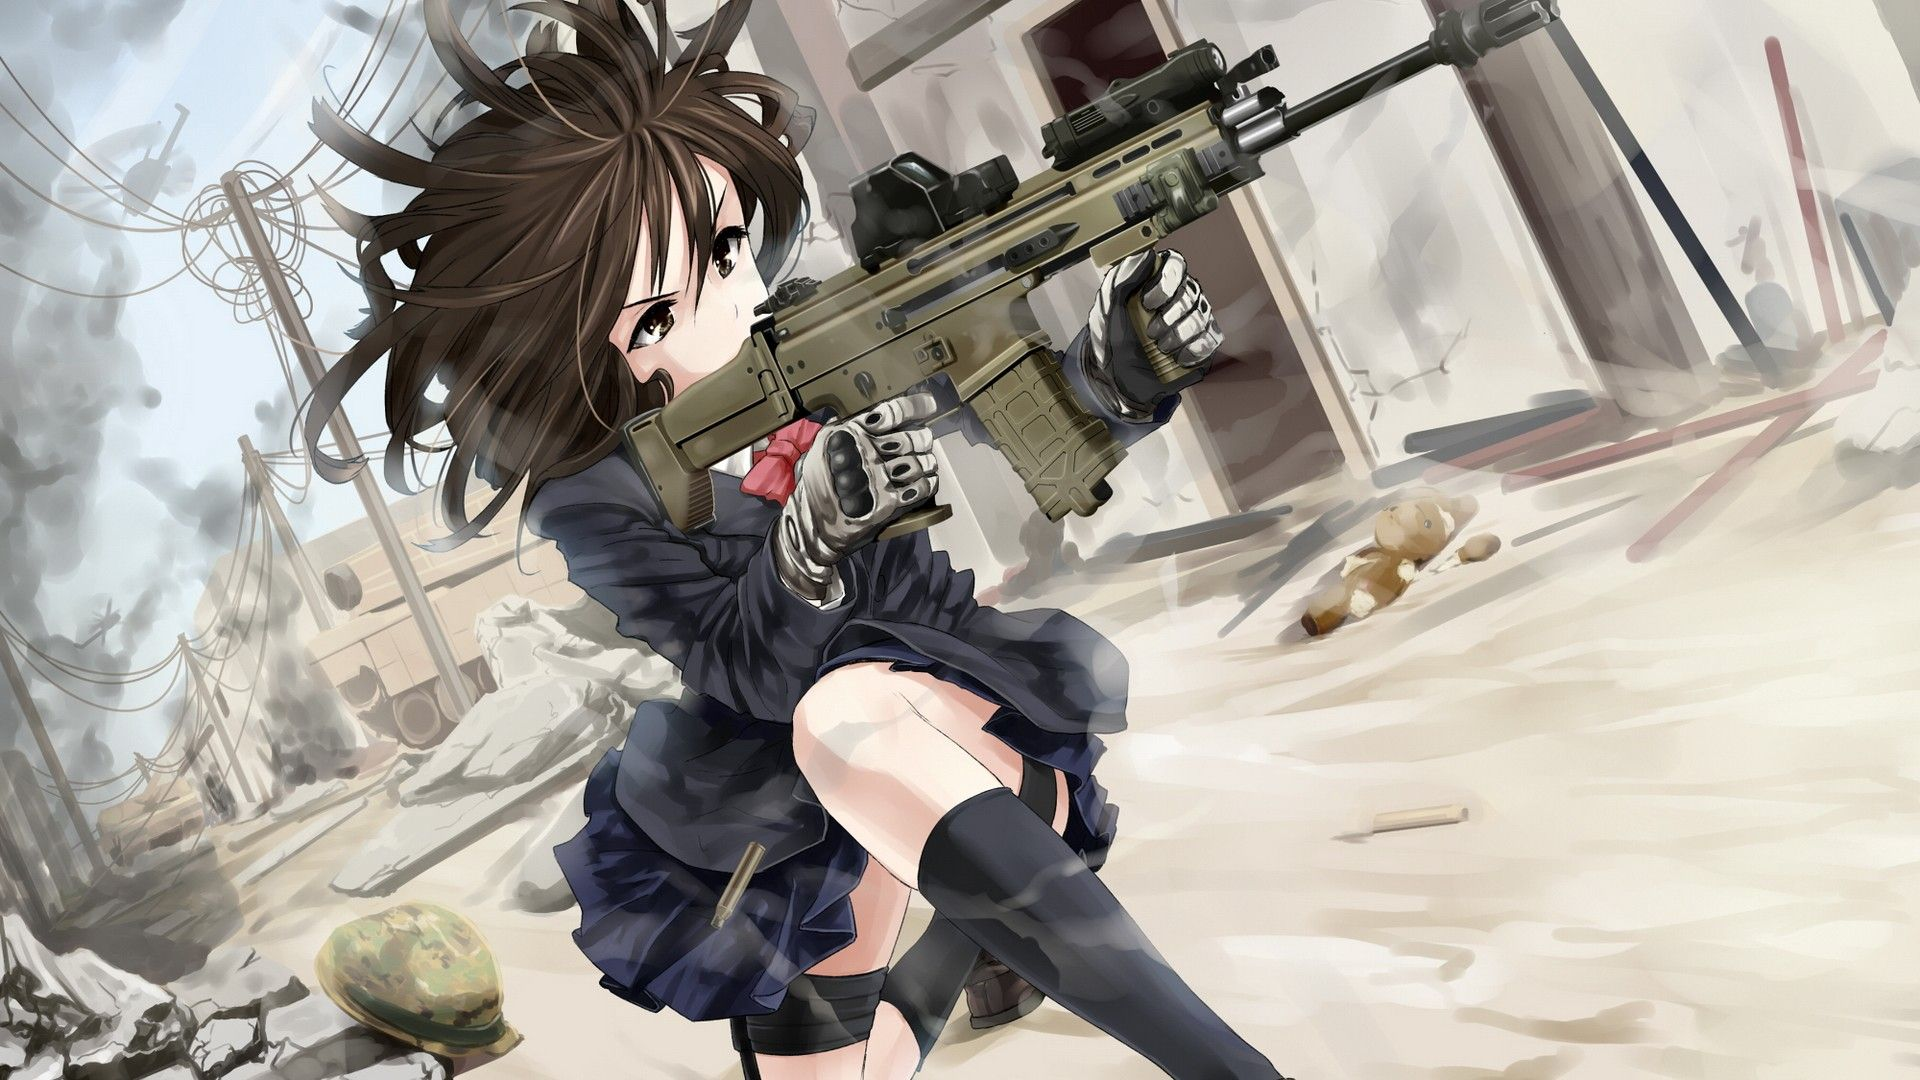 Anime Girls With Guns